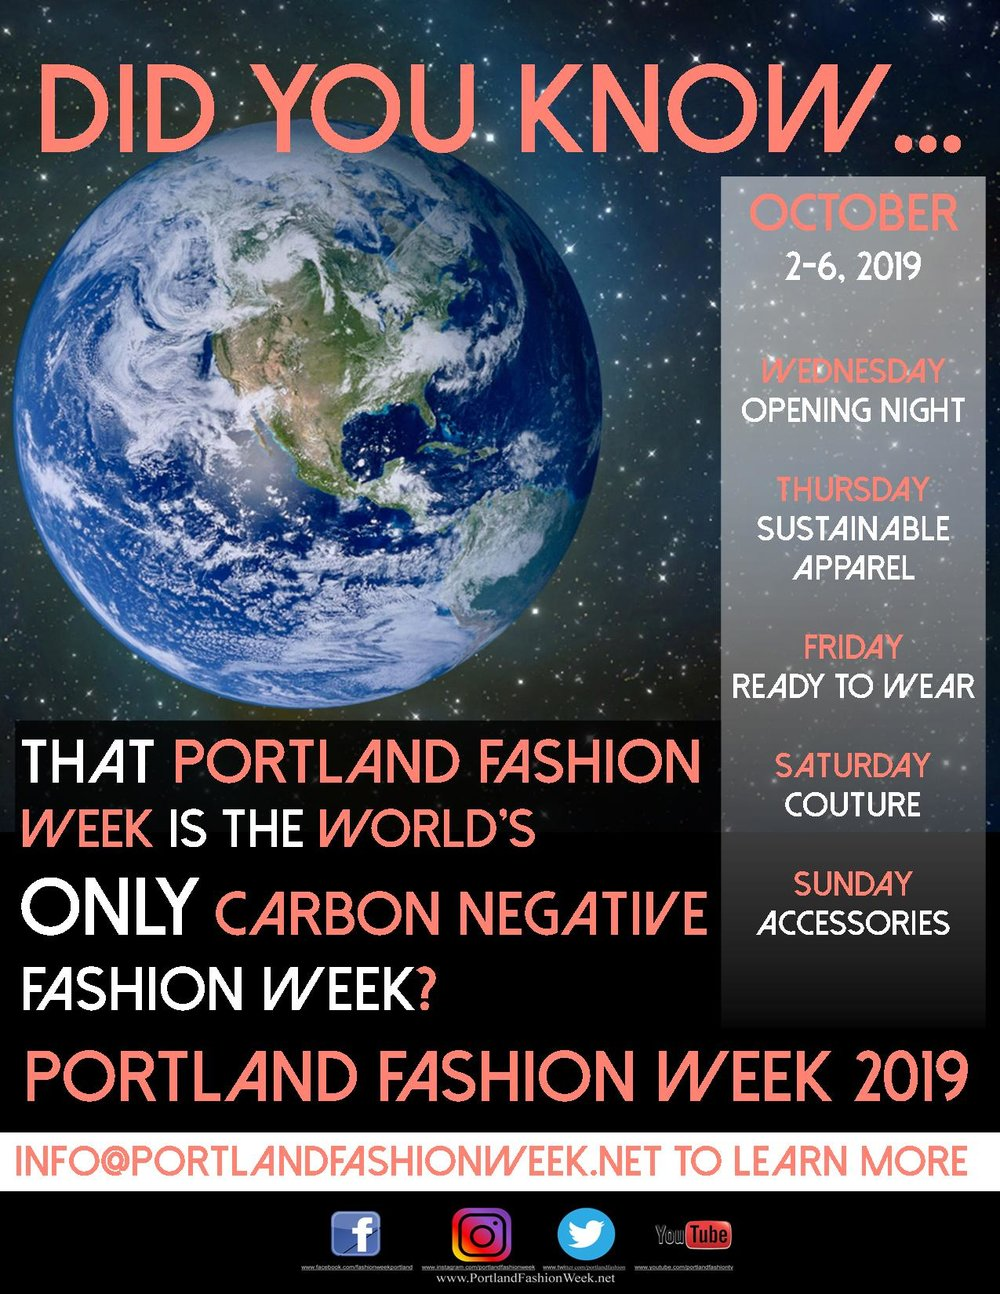 Portland Fashion Week is - The world's only carbon negative fashion week.Each year we offset our event's carbon foot print by our tireless tree planting efforts! Over 11,000 to date and by doing so we have contributed directly to the return of Johnson Creek's Coho salmon run, declared extinct for 40 years!We have also gone paperless; taken a stand against the corporate leather, palm oil and coconut water industries' cruel and environmentally degrading aspects; championed fair and ethical labour practice, source only organic consumables; banned plastics and non cruelty free styling products from our events; and we are honored to be among the first progenitors within the world's current green and sustainable fashion movement.And we thank our supporters for helping to make it all happen.